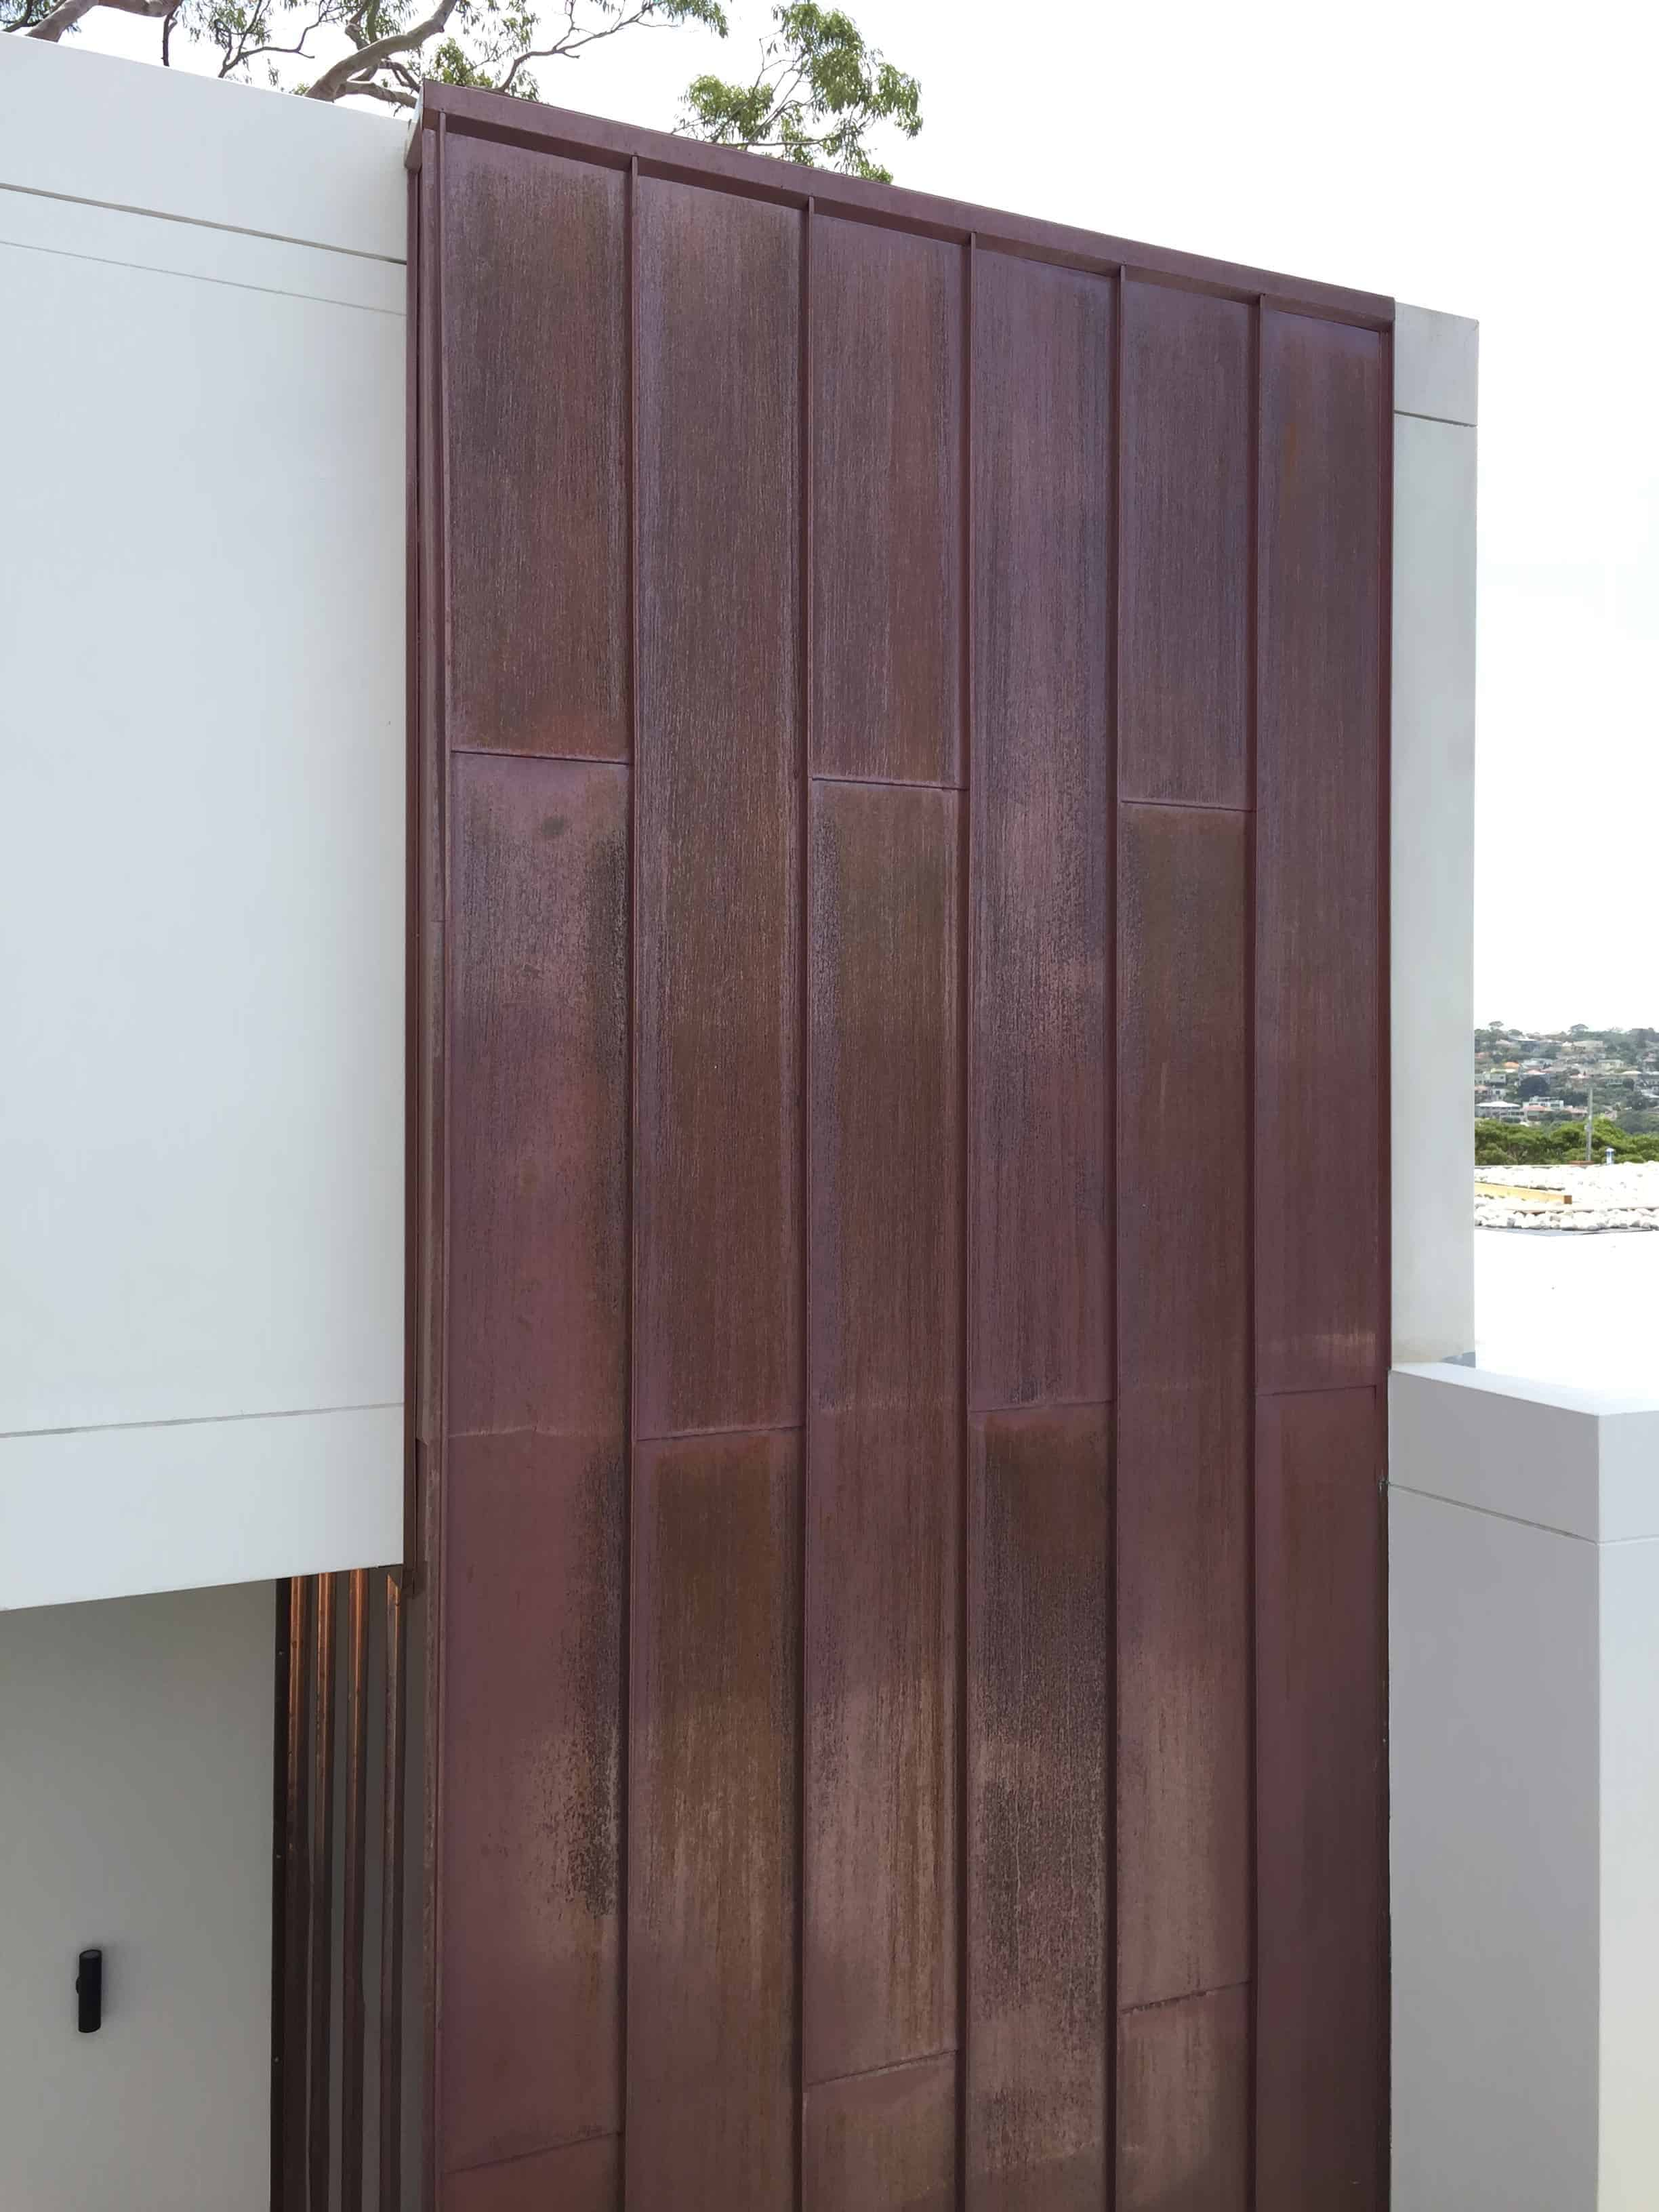 Standing Seam Corten Featured Exterior Wall